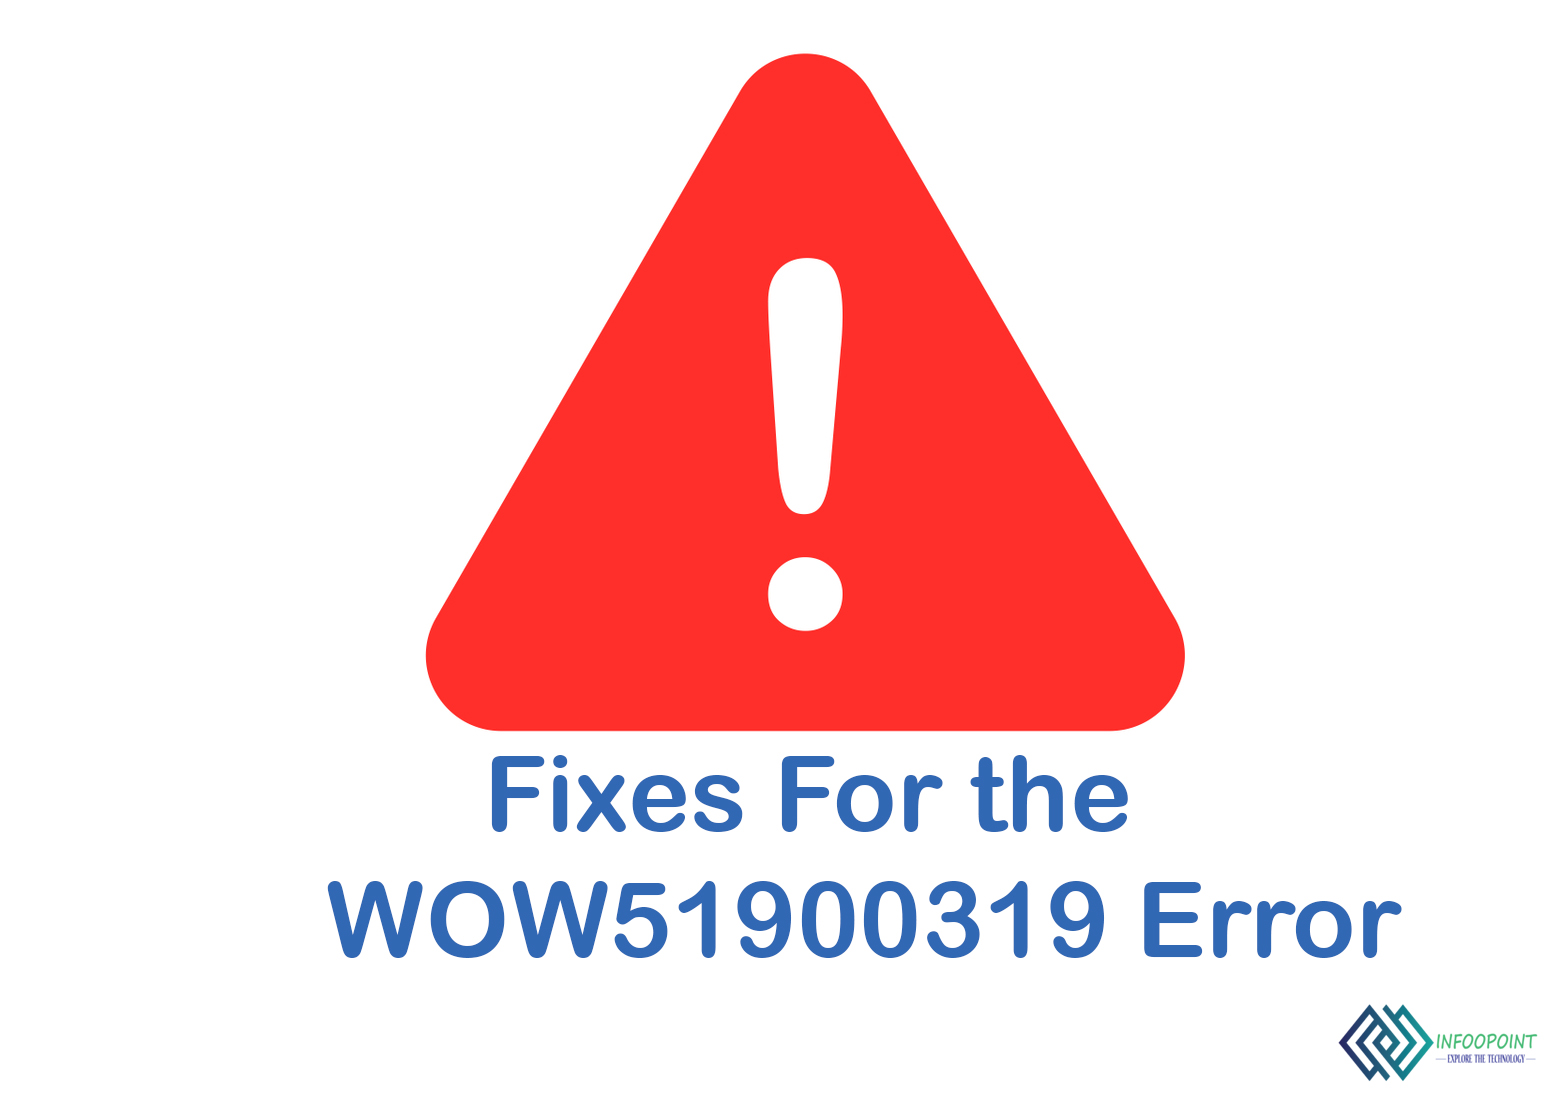 How To Fix The Wow 51900319 Error Quickly